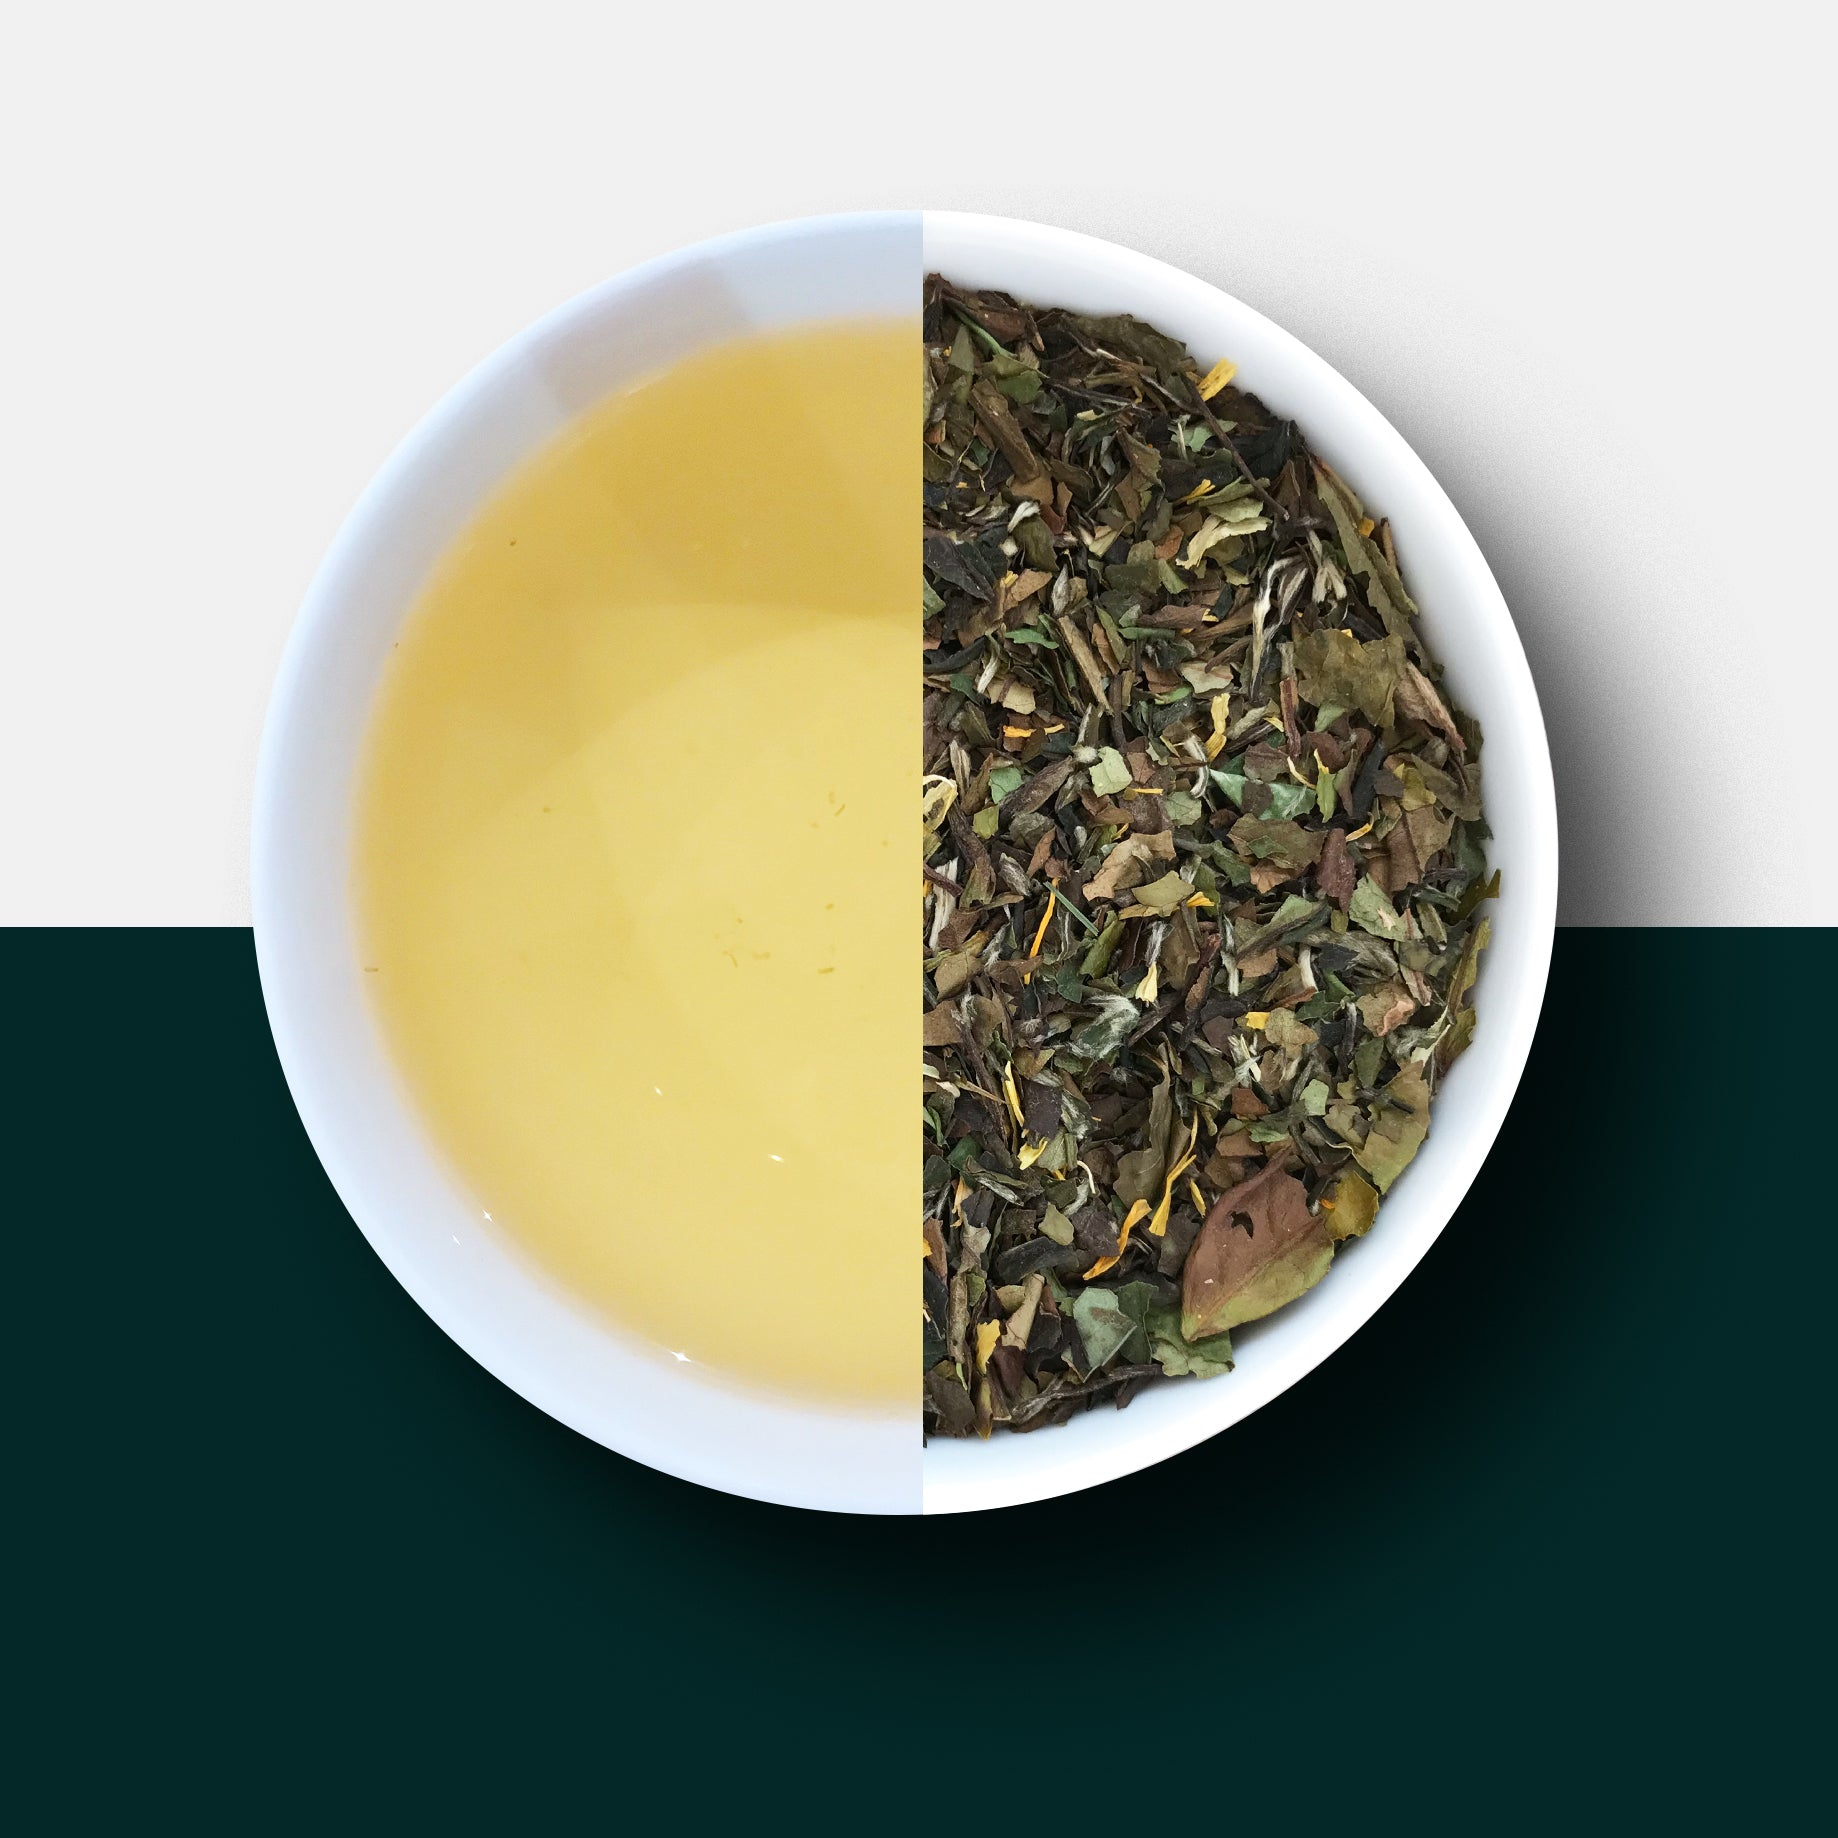 White tea and mango - fruit tea - loose leaf tea and liquor